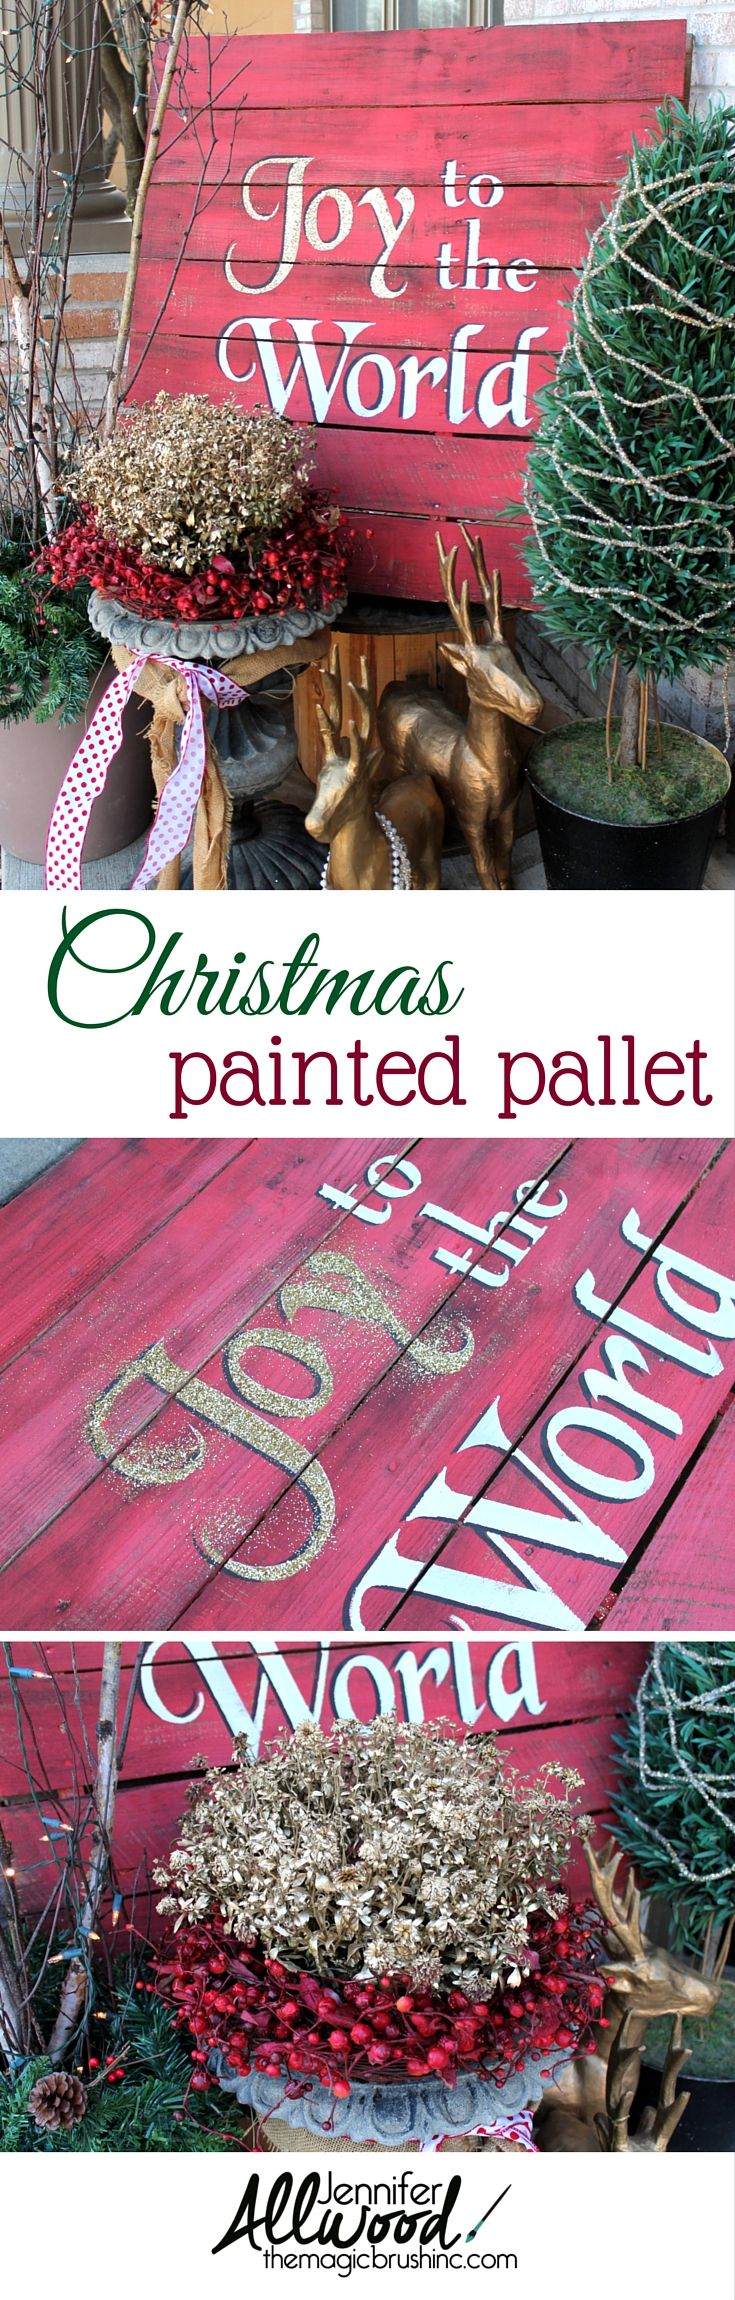 Make a Joy to the World pallet for your front porch for Christmas! An easy diy pallet project . More painting projects at www.themagicbrushinc.com